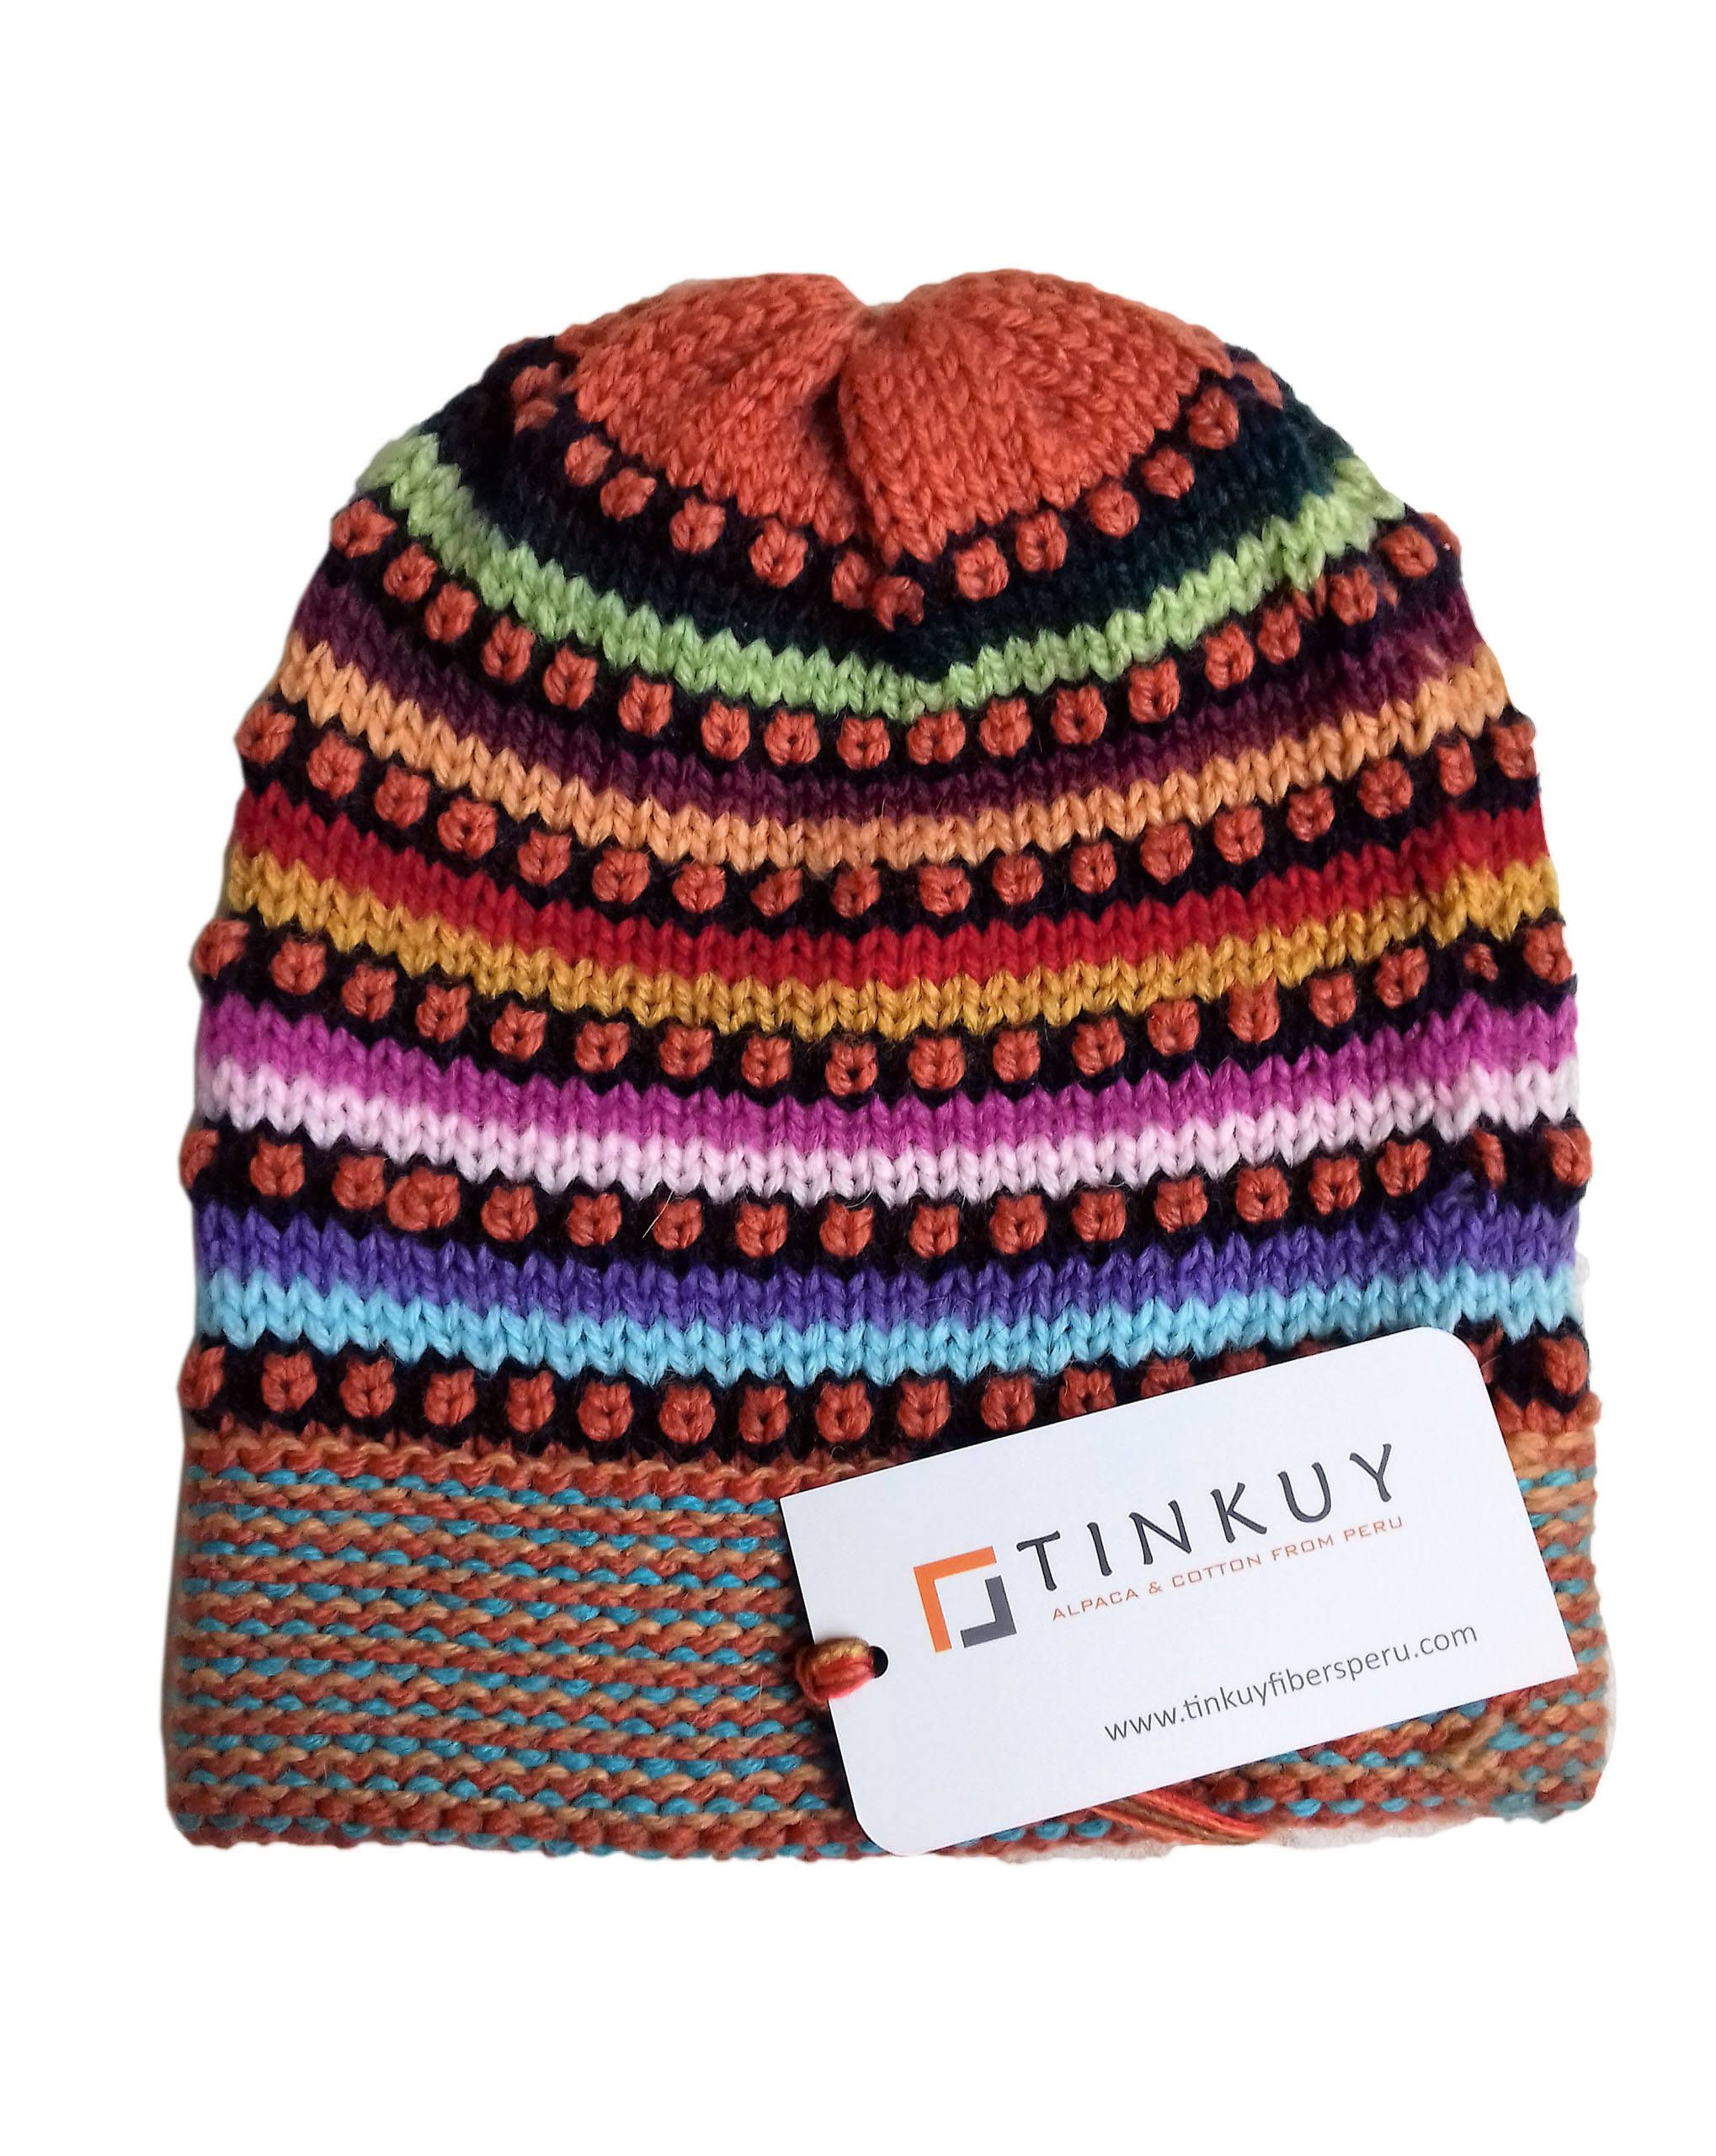 55790f0c8bf TINKUY 100% Alpaca Peru Womens Beanie Winter Knit Hat Cap Geometric  Multicolor by TINKUY on Etsy